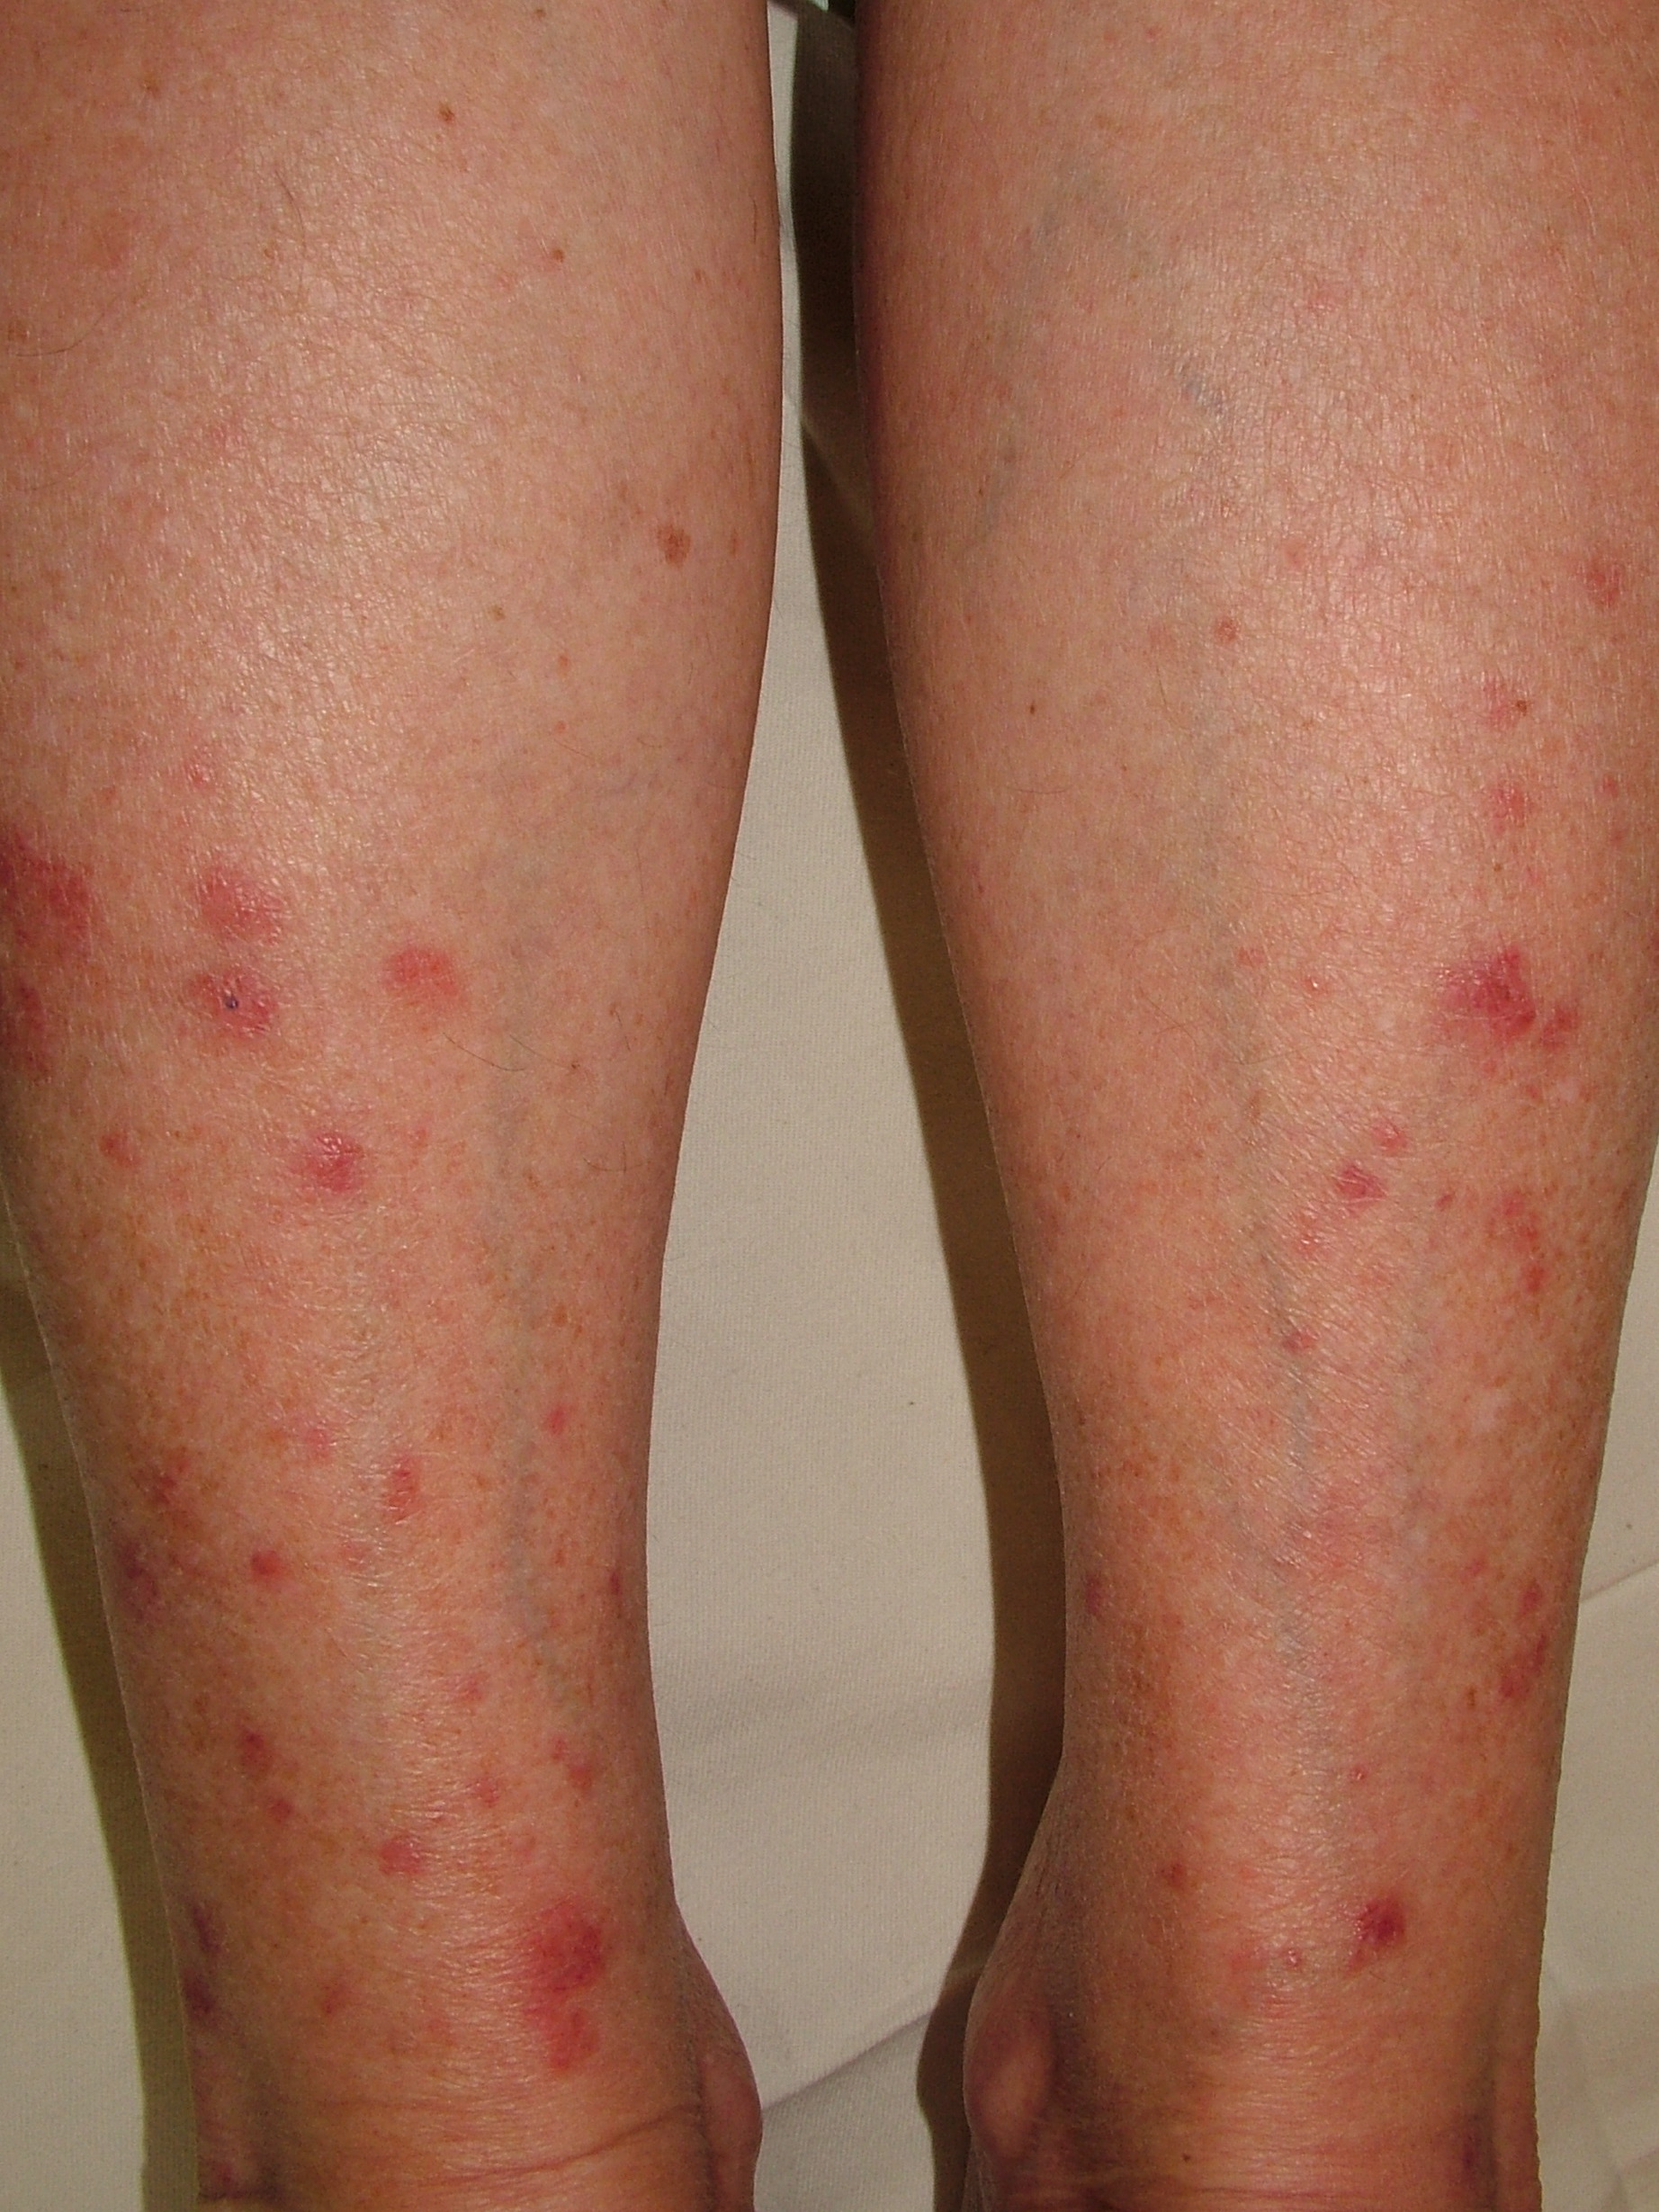 Papular polymorphic light eruption on lower legs in female